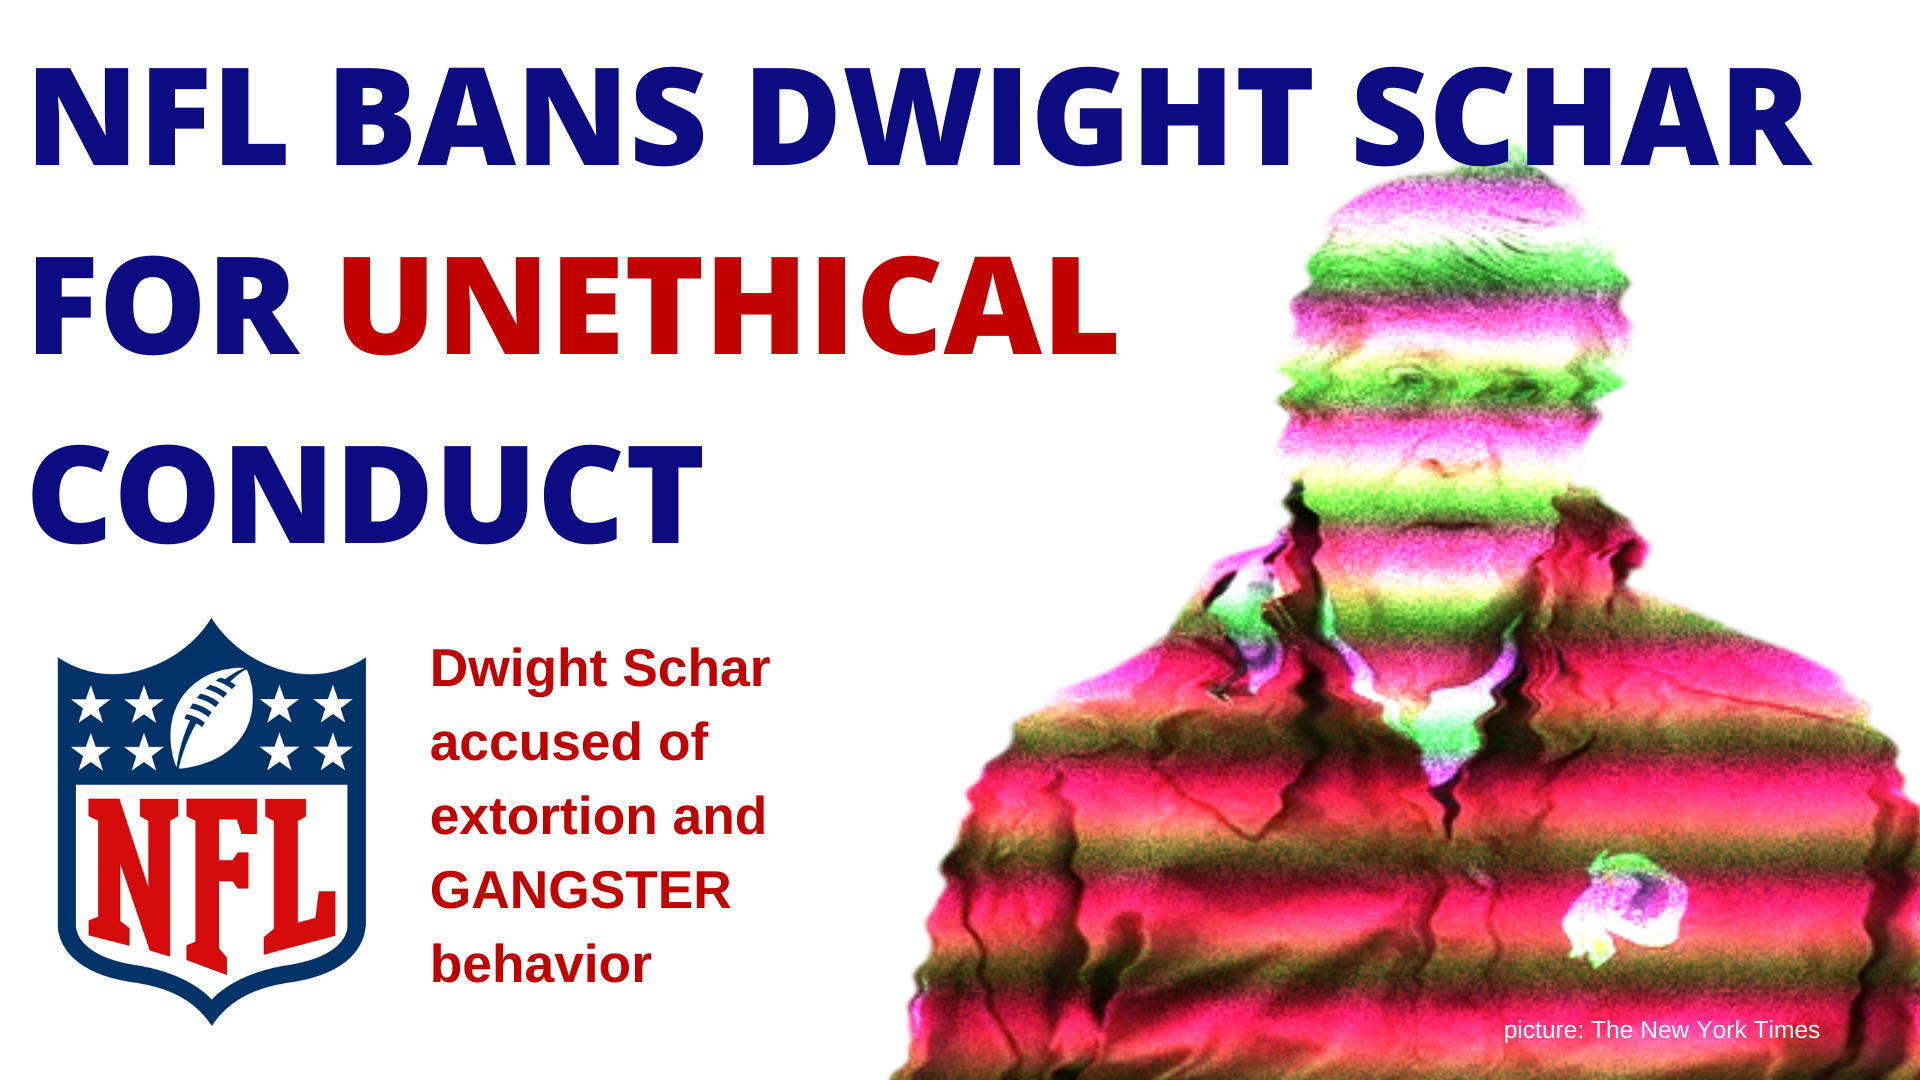 NFL BANS DWIGHT SCHAR FOR UNETHICAL CONDUCT